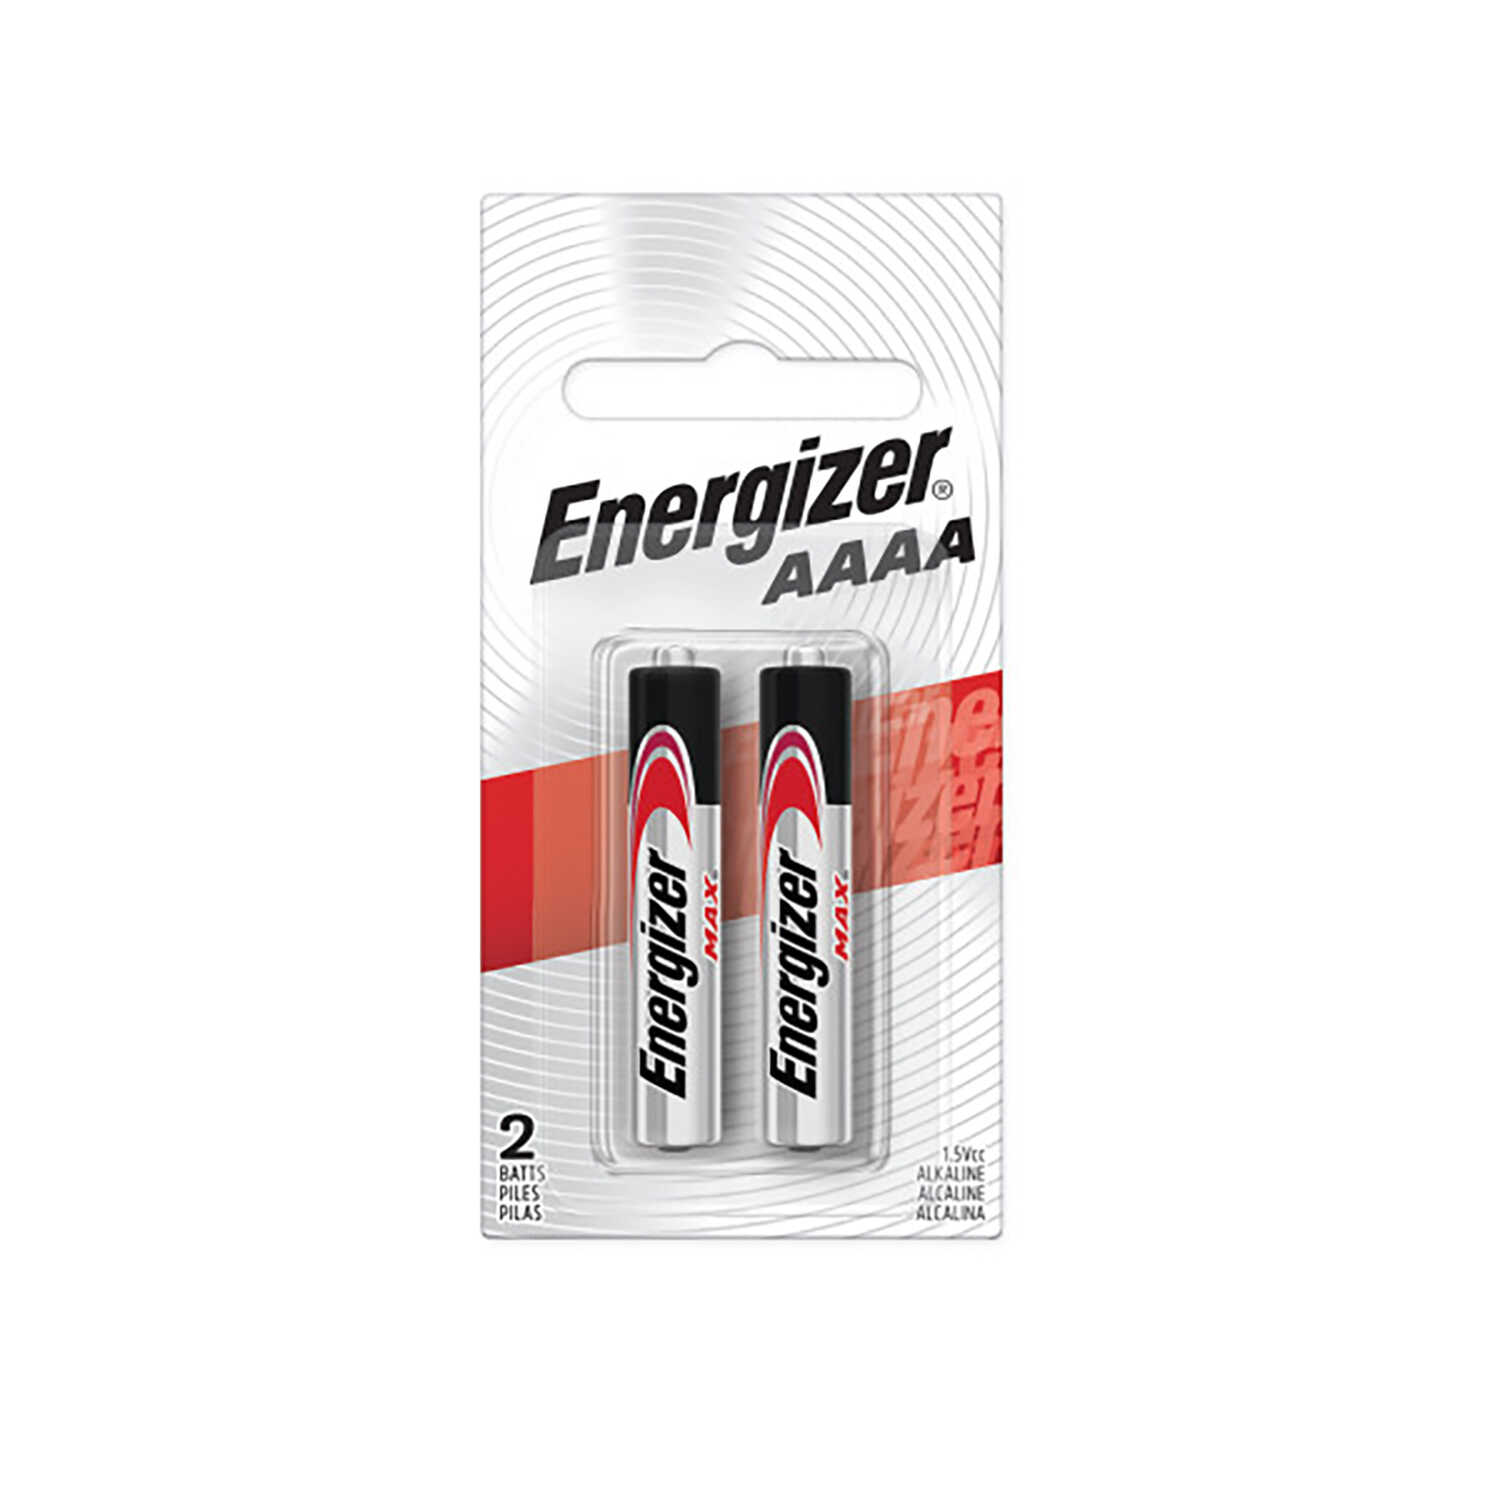 Energizer  MAX  AAAA  Alkaline  Batteries  2 pk 1.5 volts Carded